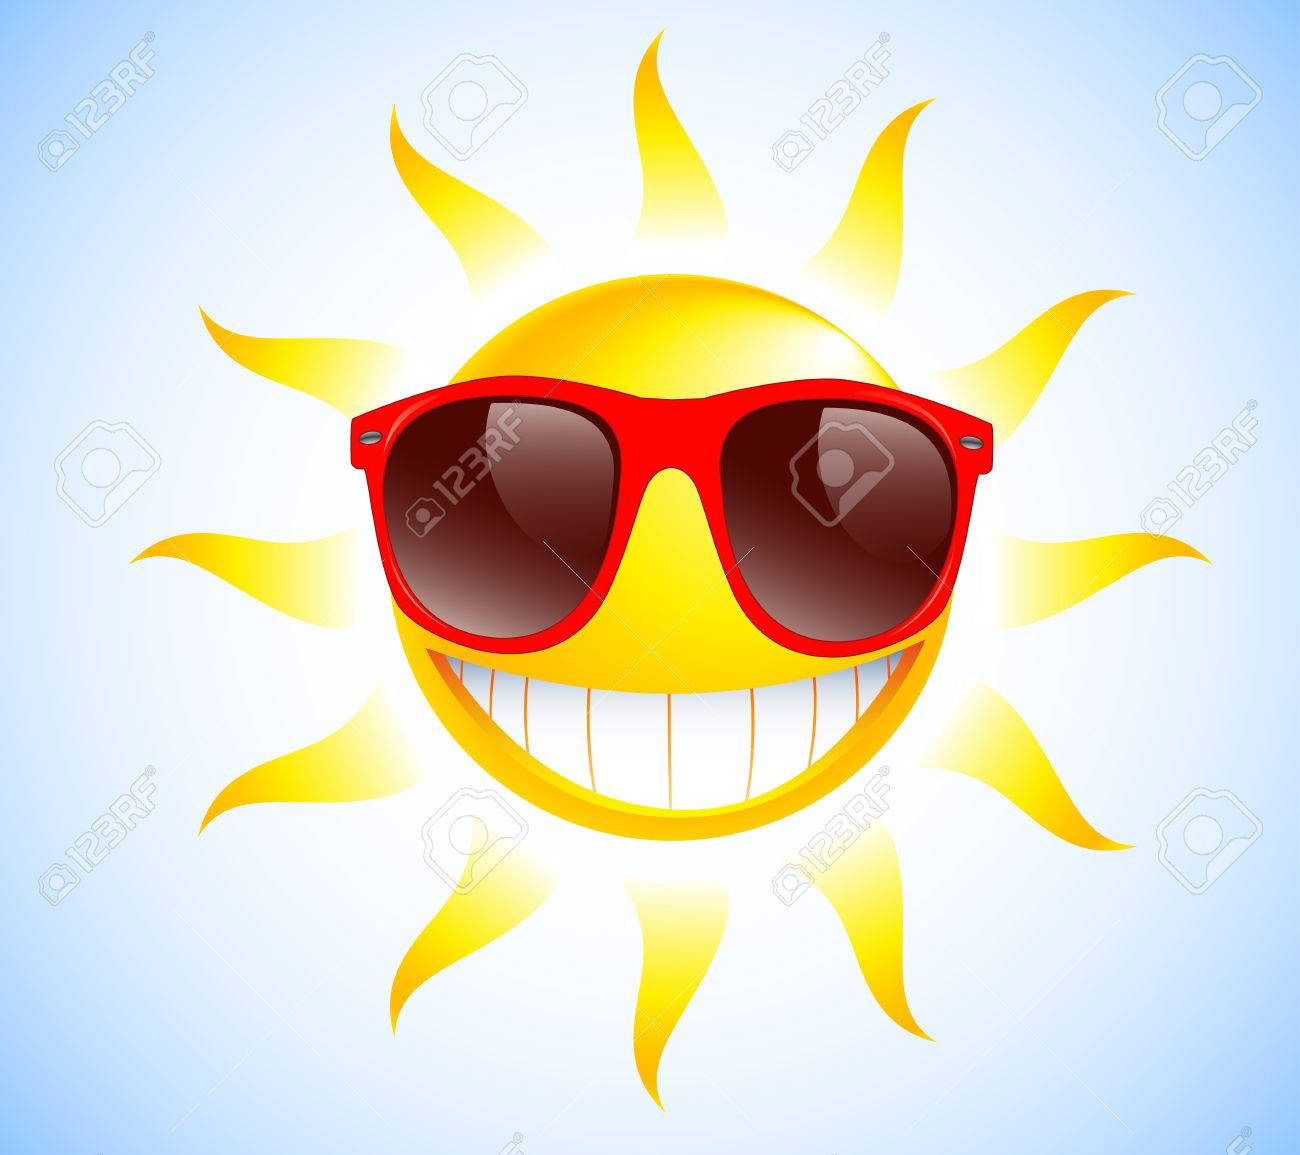 Funny sun with sunglasses Vector illustration background - 30680978